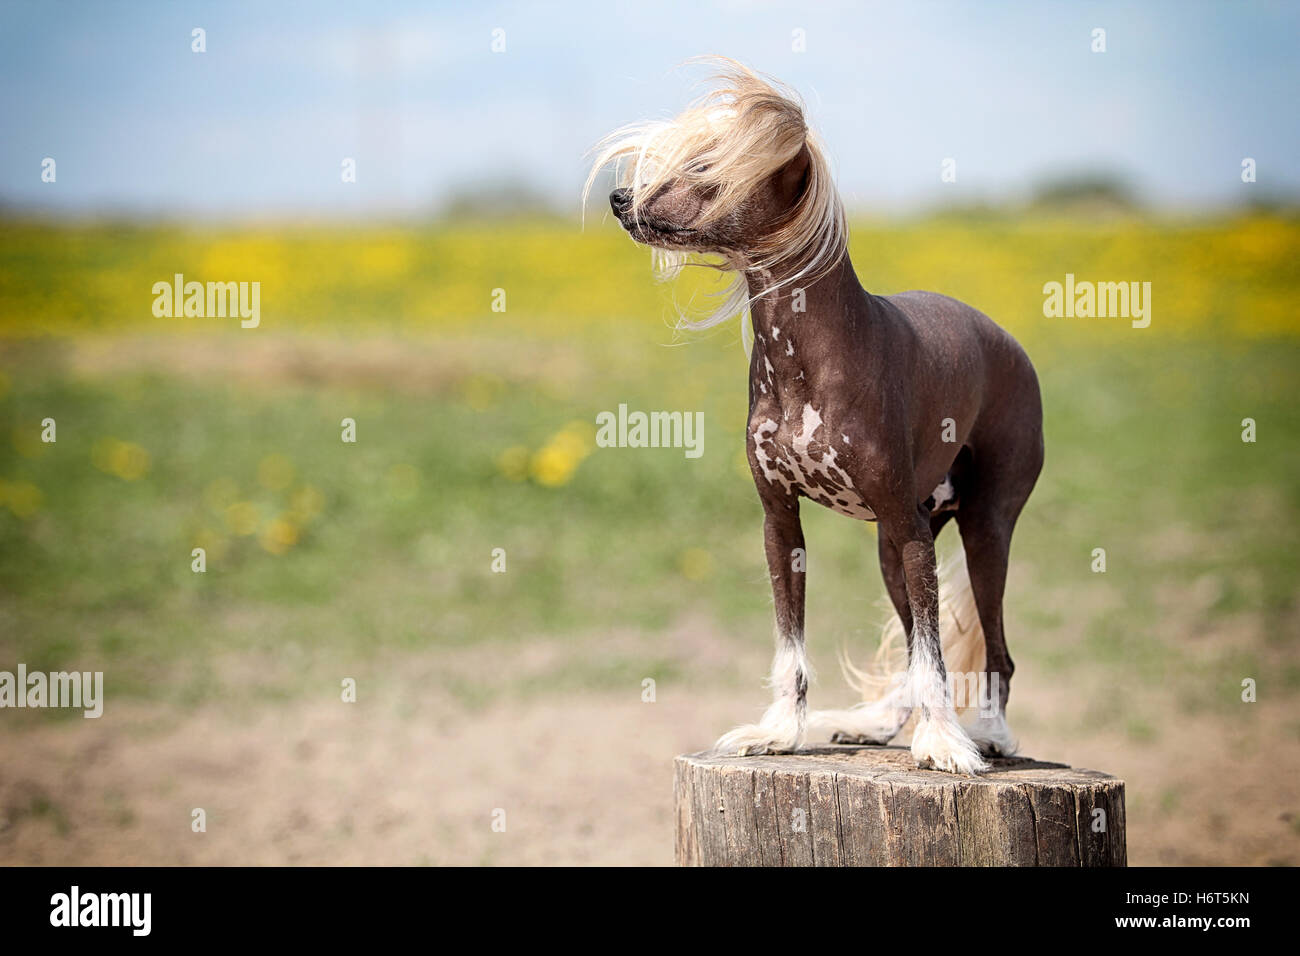 animal, pet, field, summer, summerly, dog, chinese, meadow, grass, lawn, green, - Stock Image